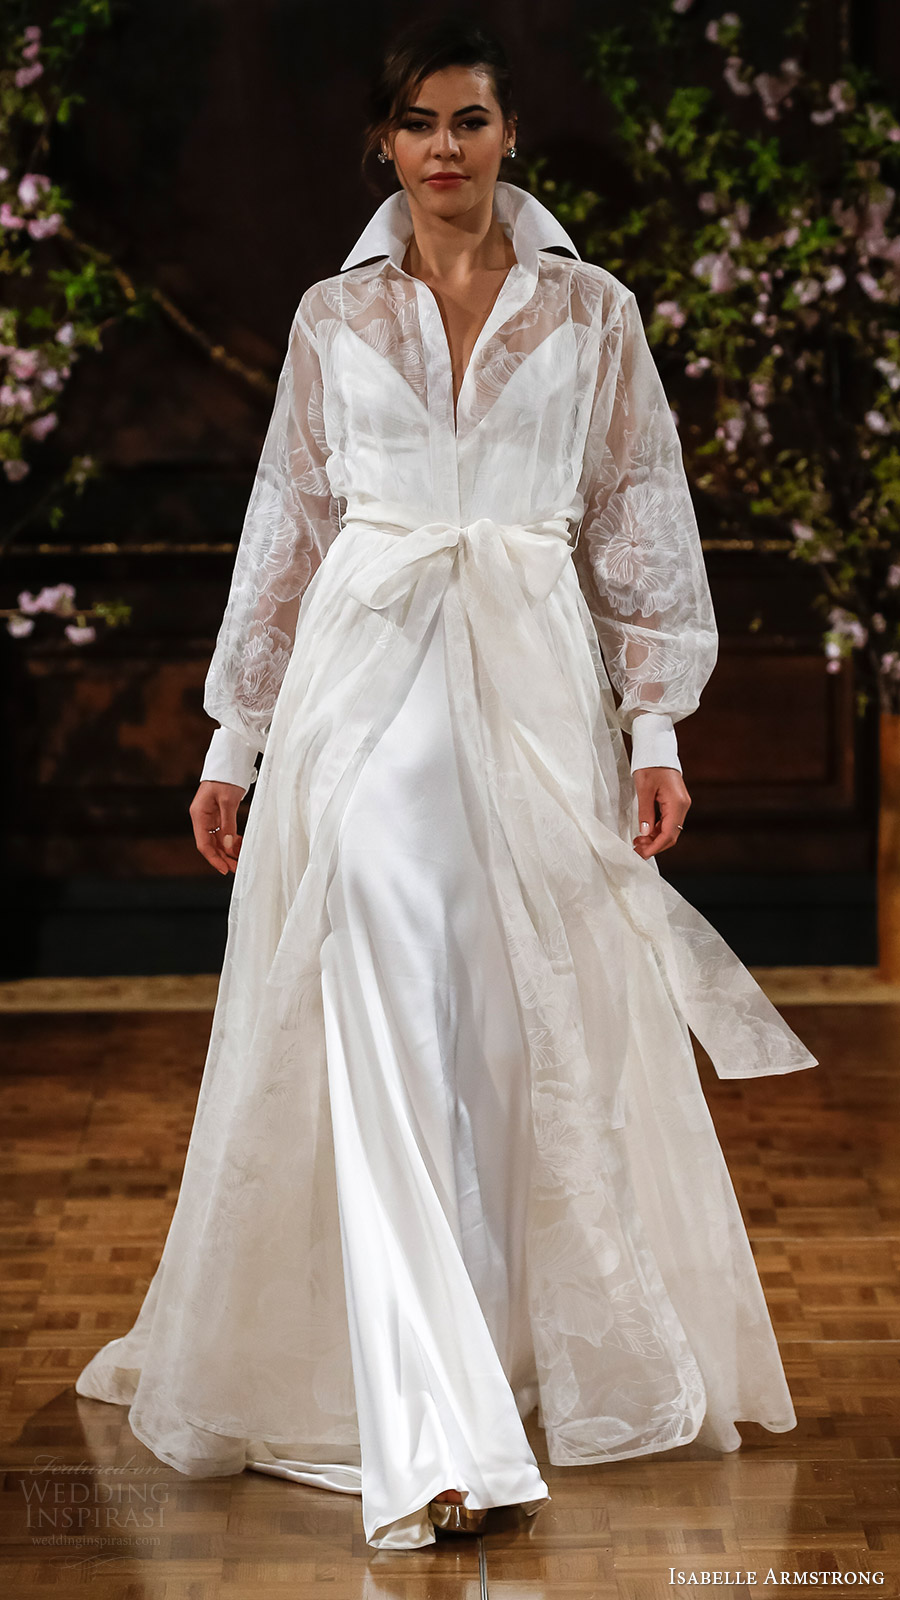 isabelle armstrong bridal spring 2017 sleeveless spaghetti straps vneck aline wedding dress (drew) mv over shirt collar